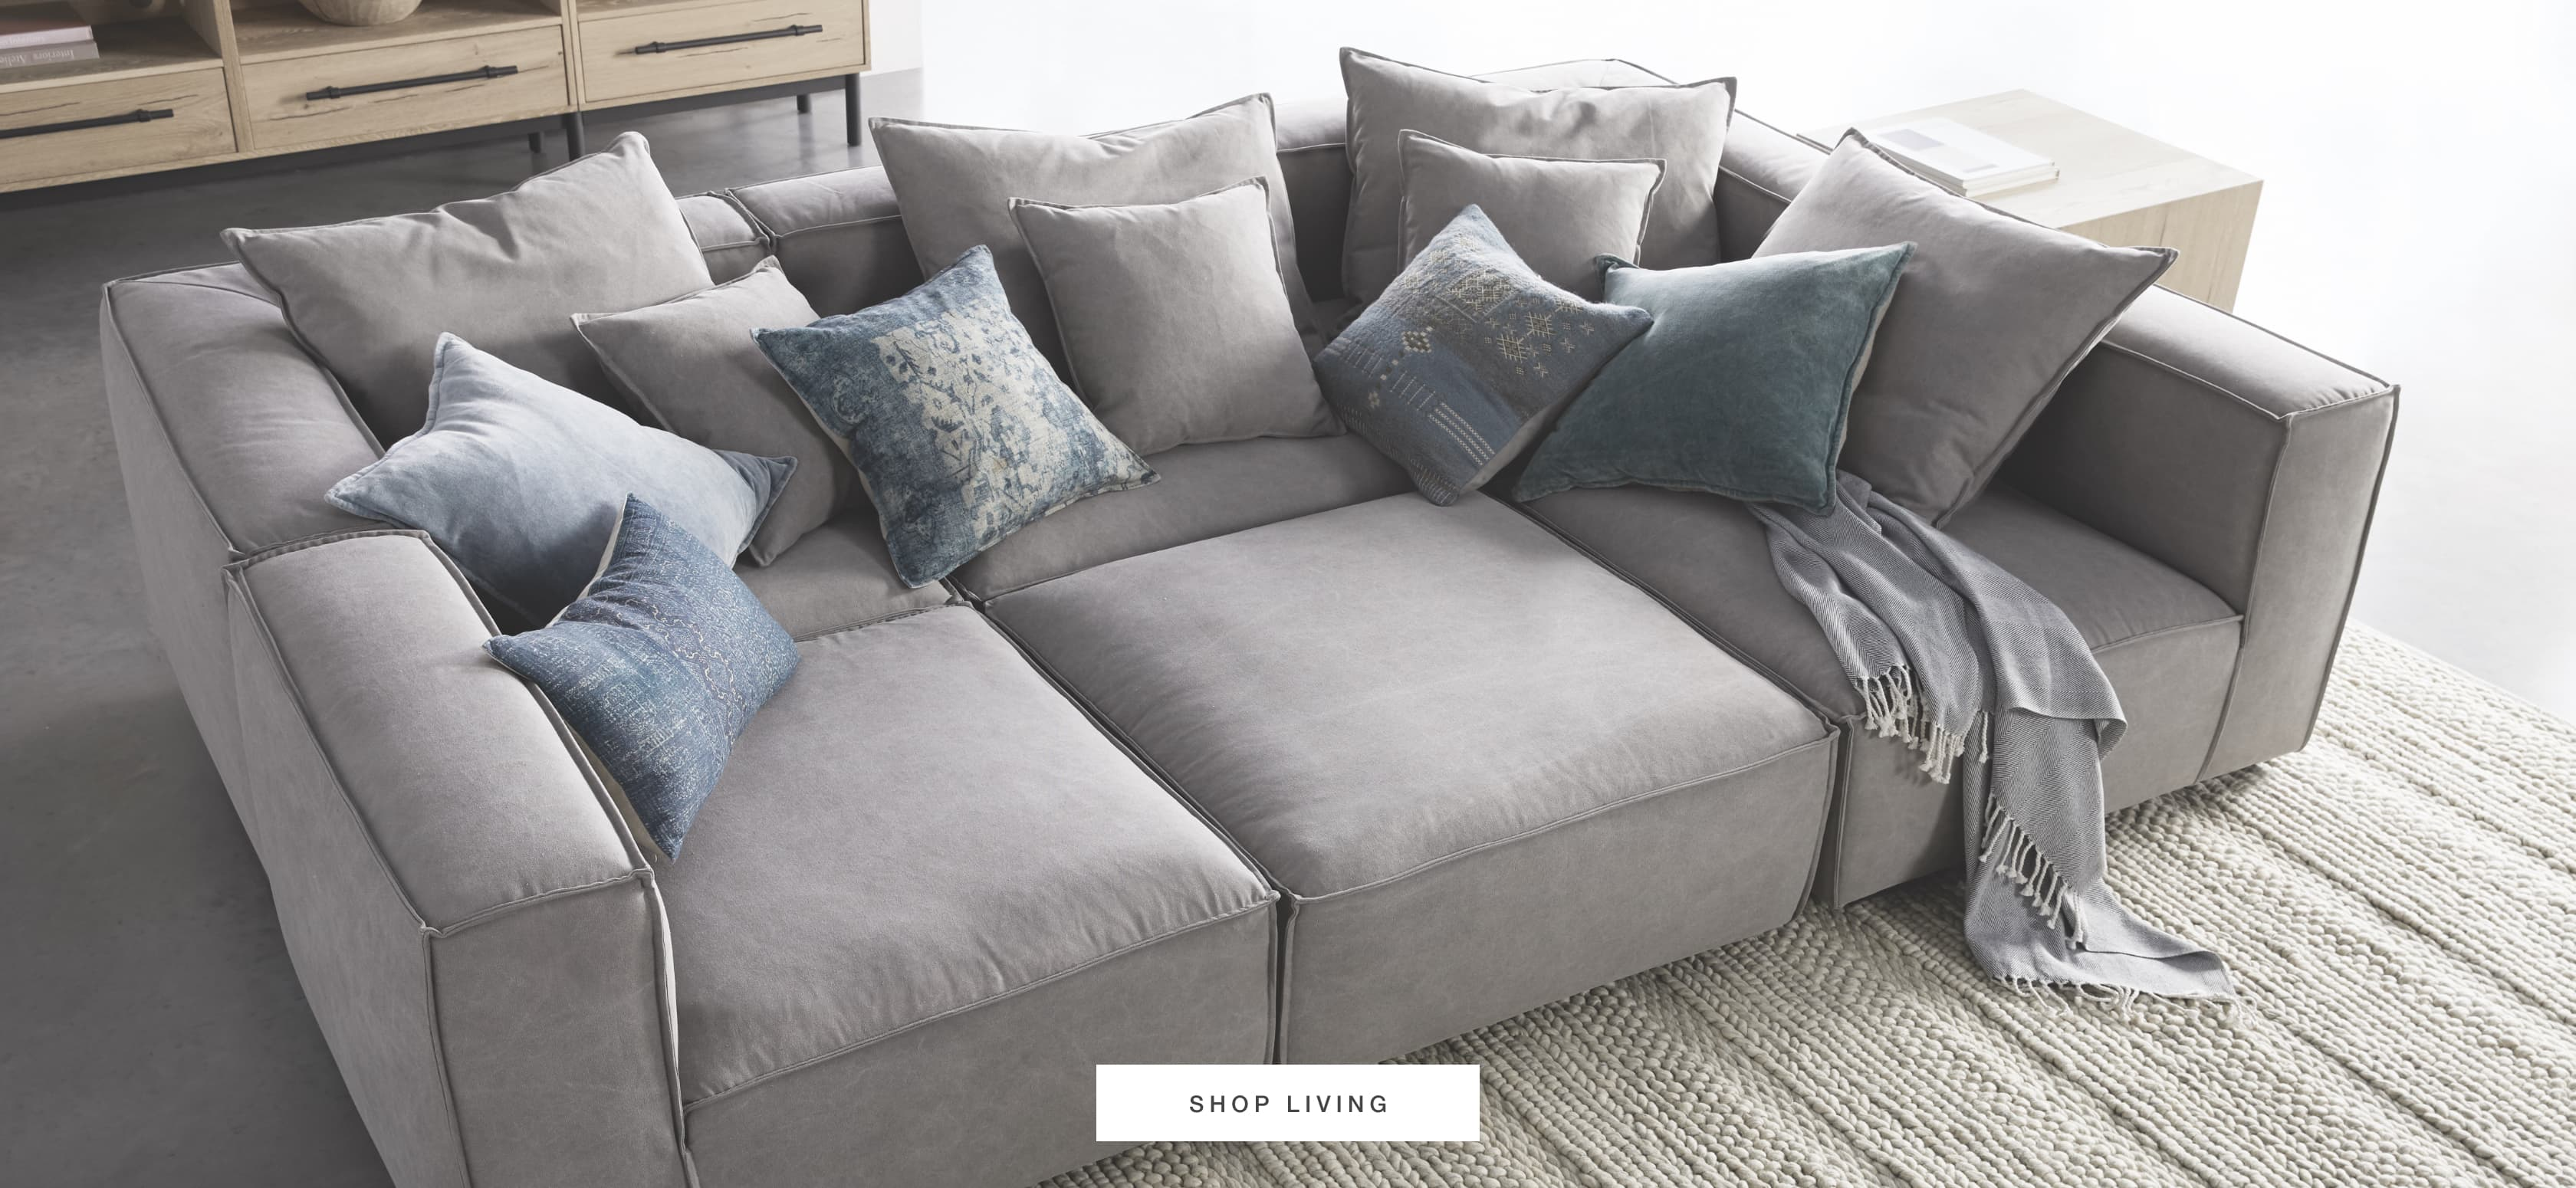 Shop Arhaus Living Room Furniture During the Friends and Family Sale